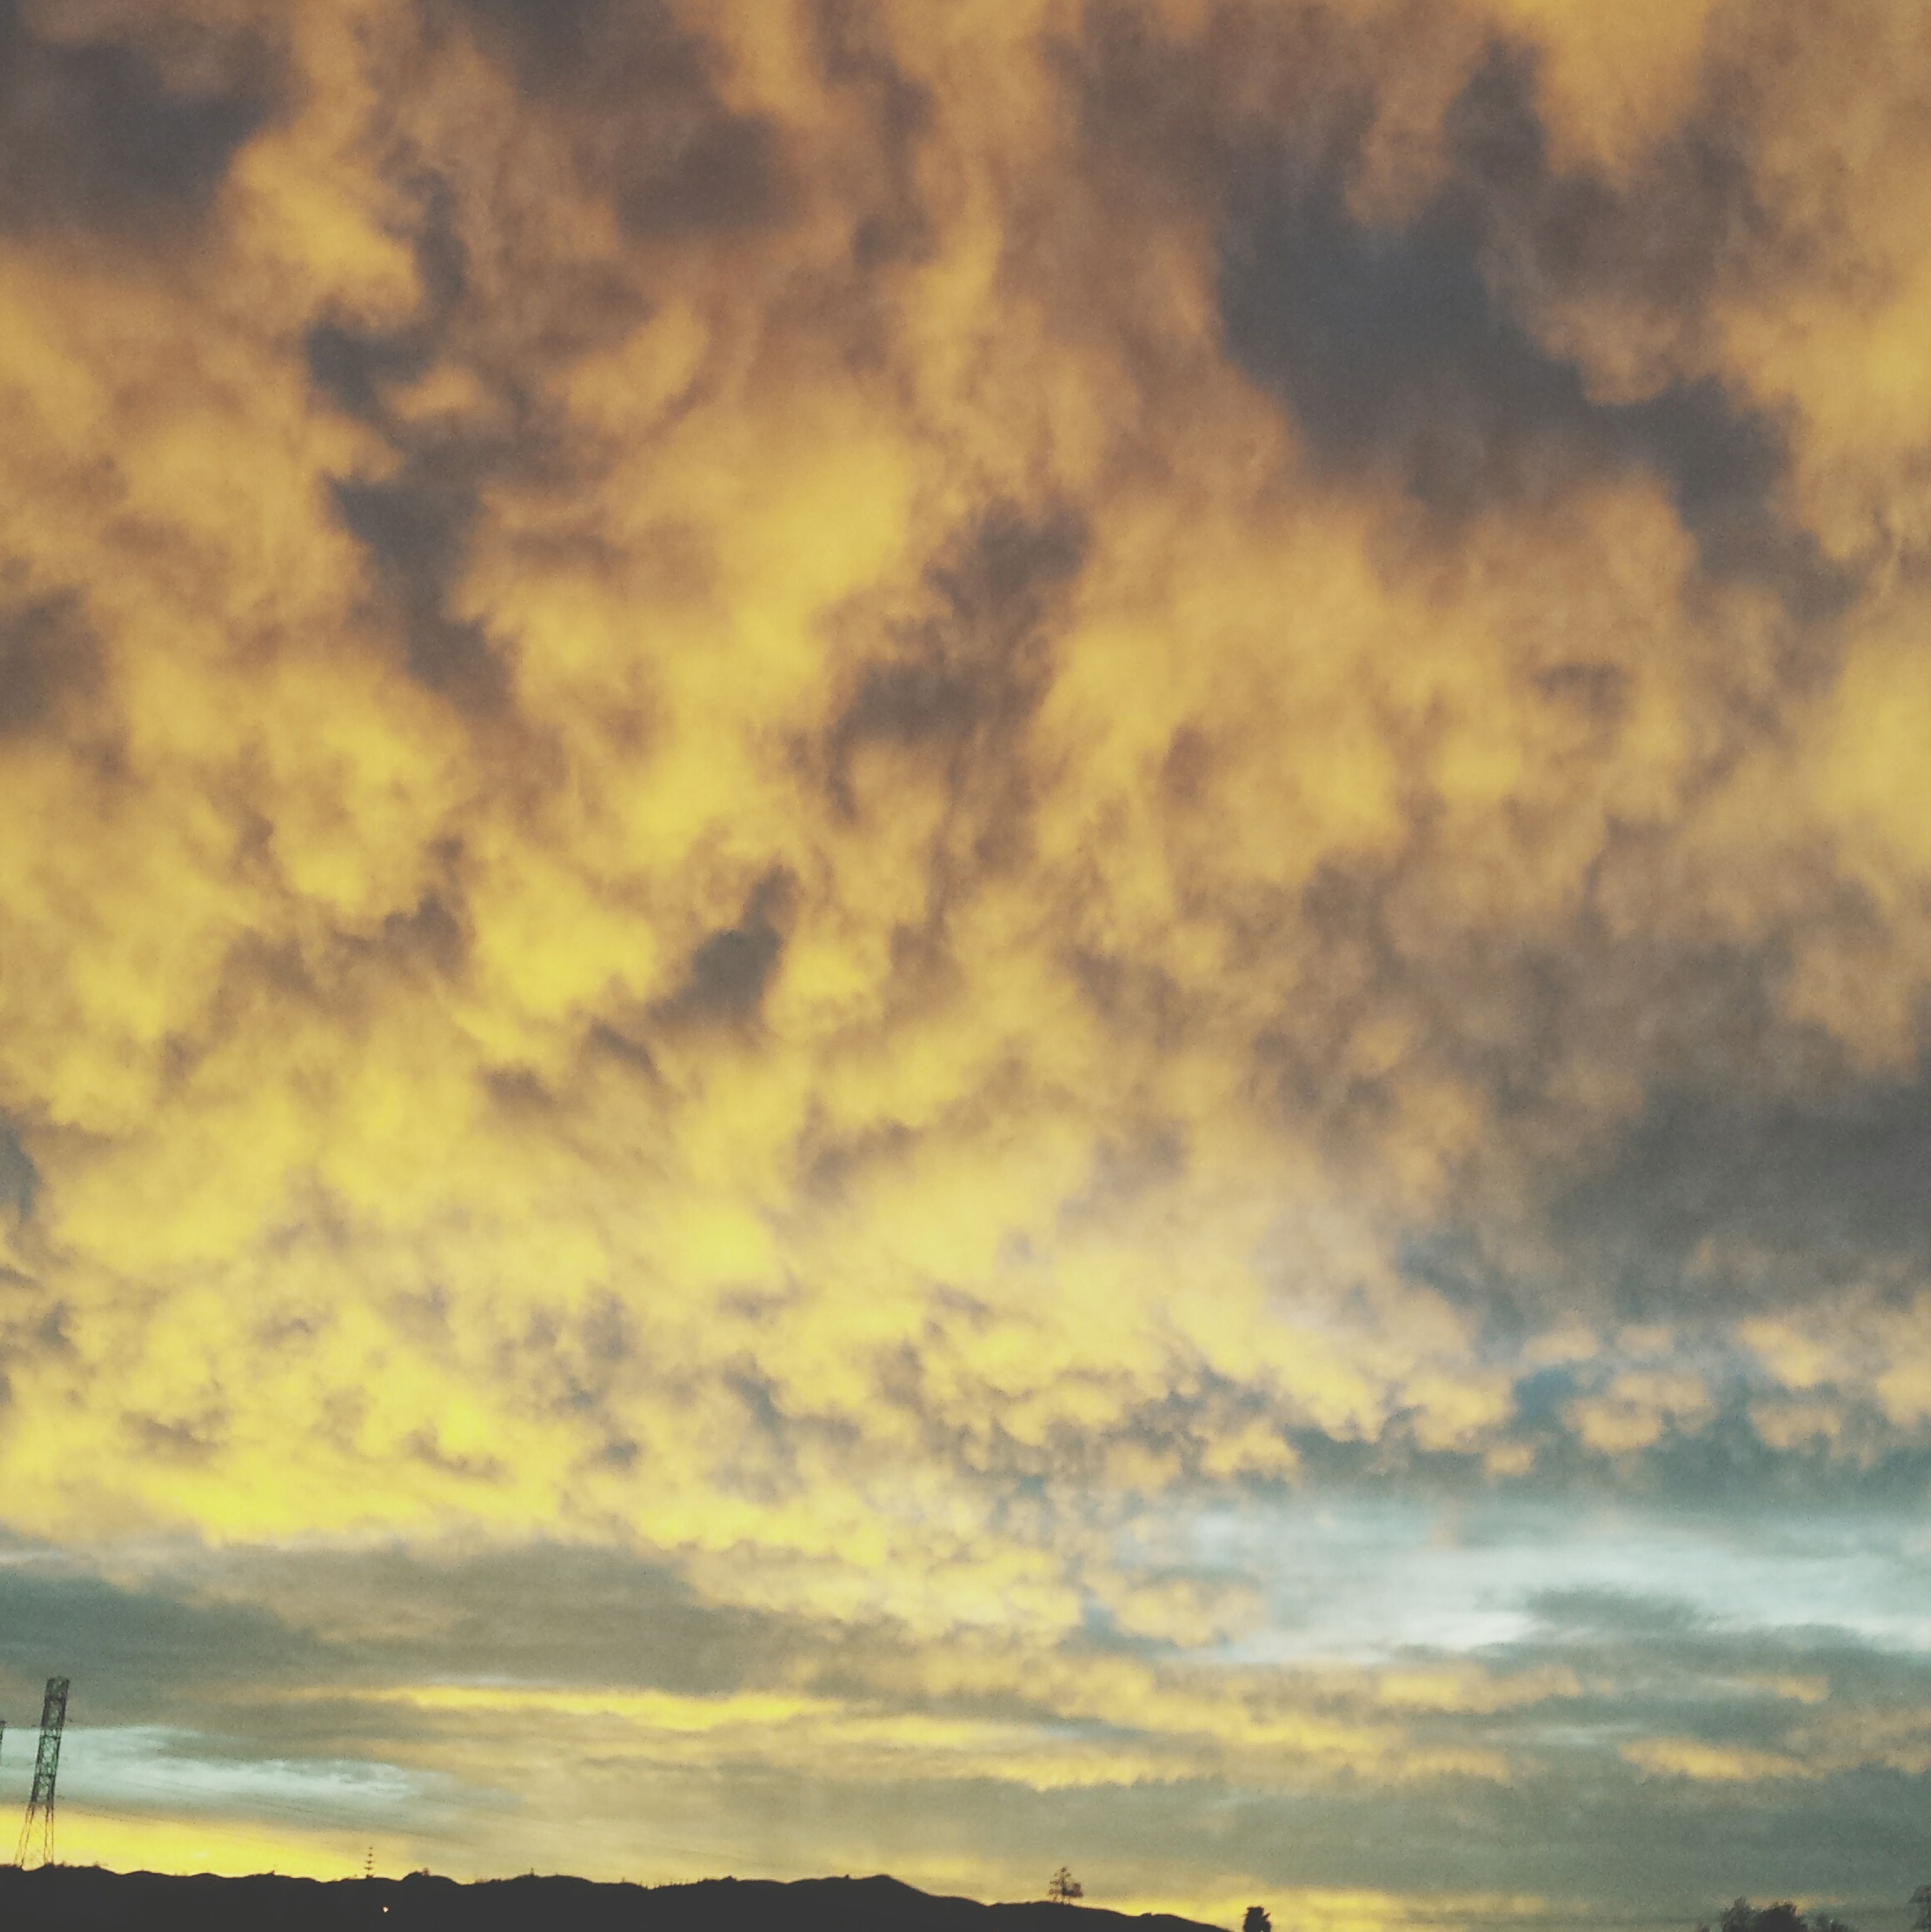 sunset, sky, cloud - sky, scenics, beauty in nature, tranquility, tranquil scene, cloudy, nature, orange color, idyllic, cloud, dramatic sky, silhouette, weather, low angle view, cloudscape, overcast, outdoors, moody sky